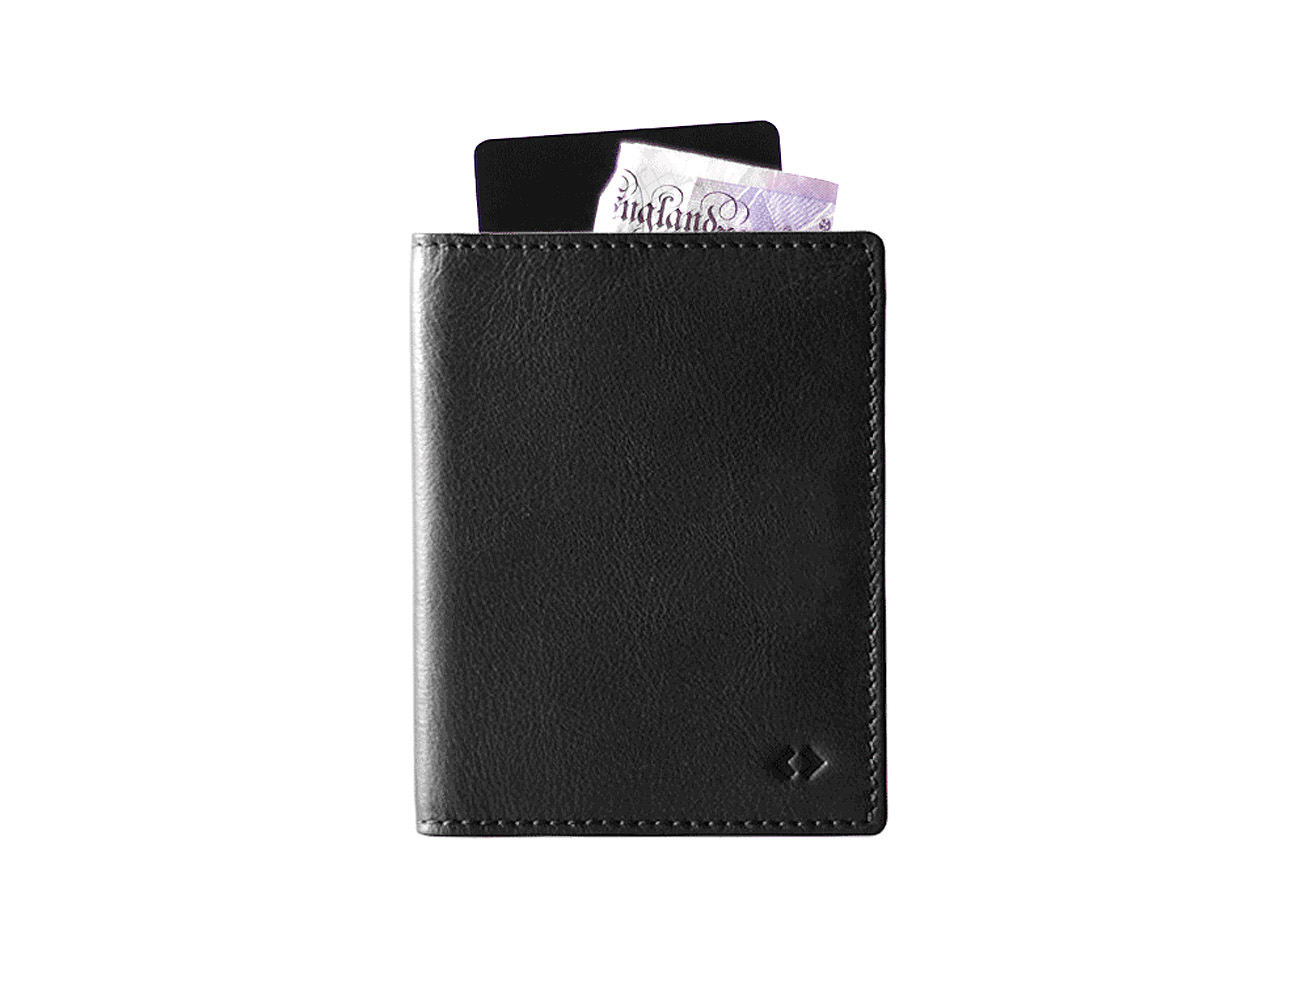 Haber London RFID Protected Card Wallet